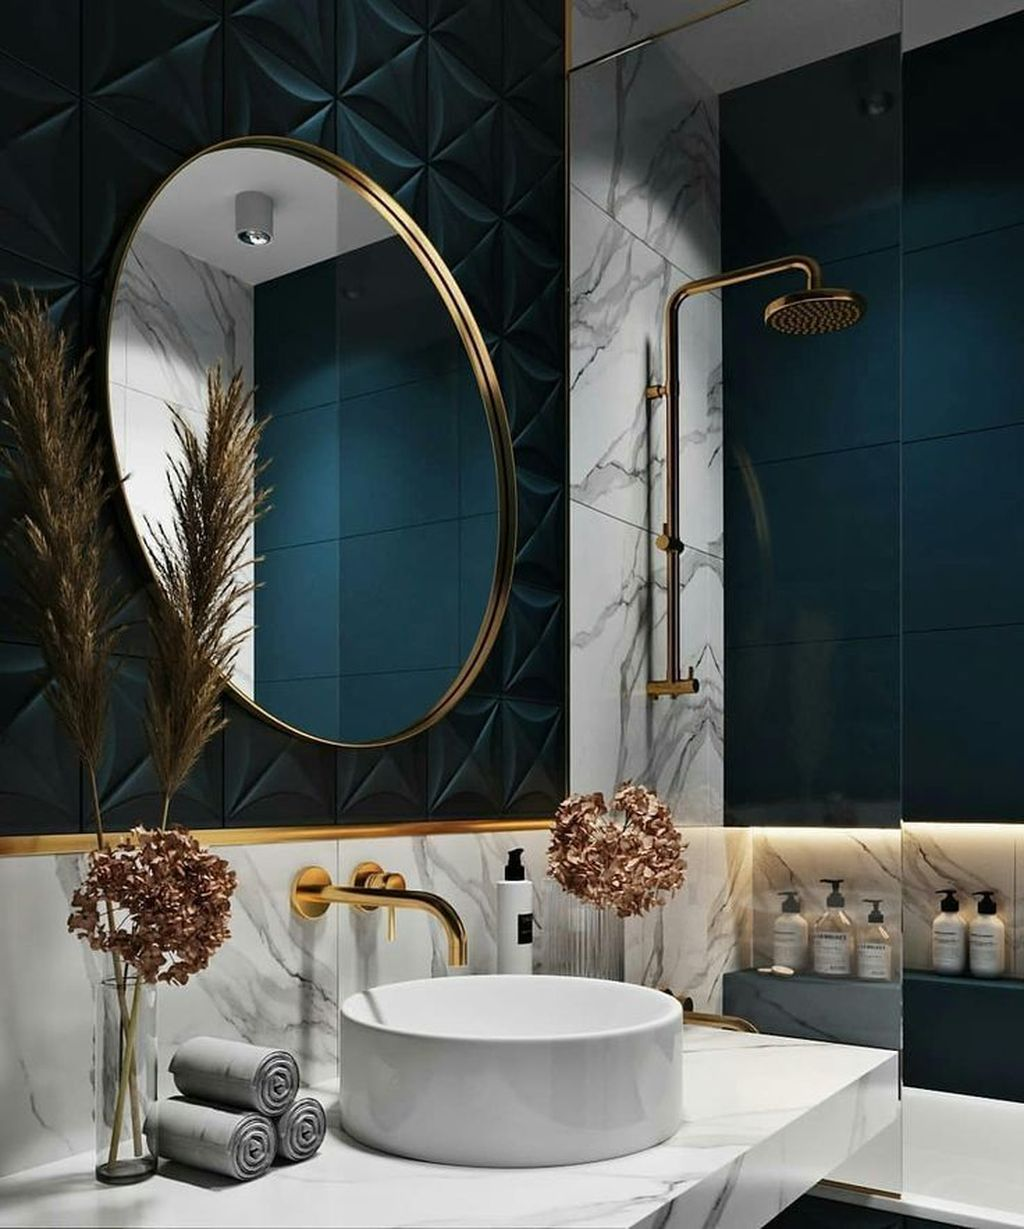 Inspiring Bathroom Interior Design Ideas 02